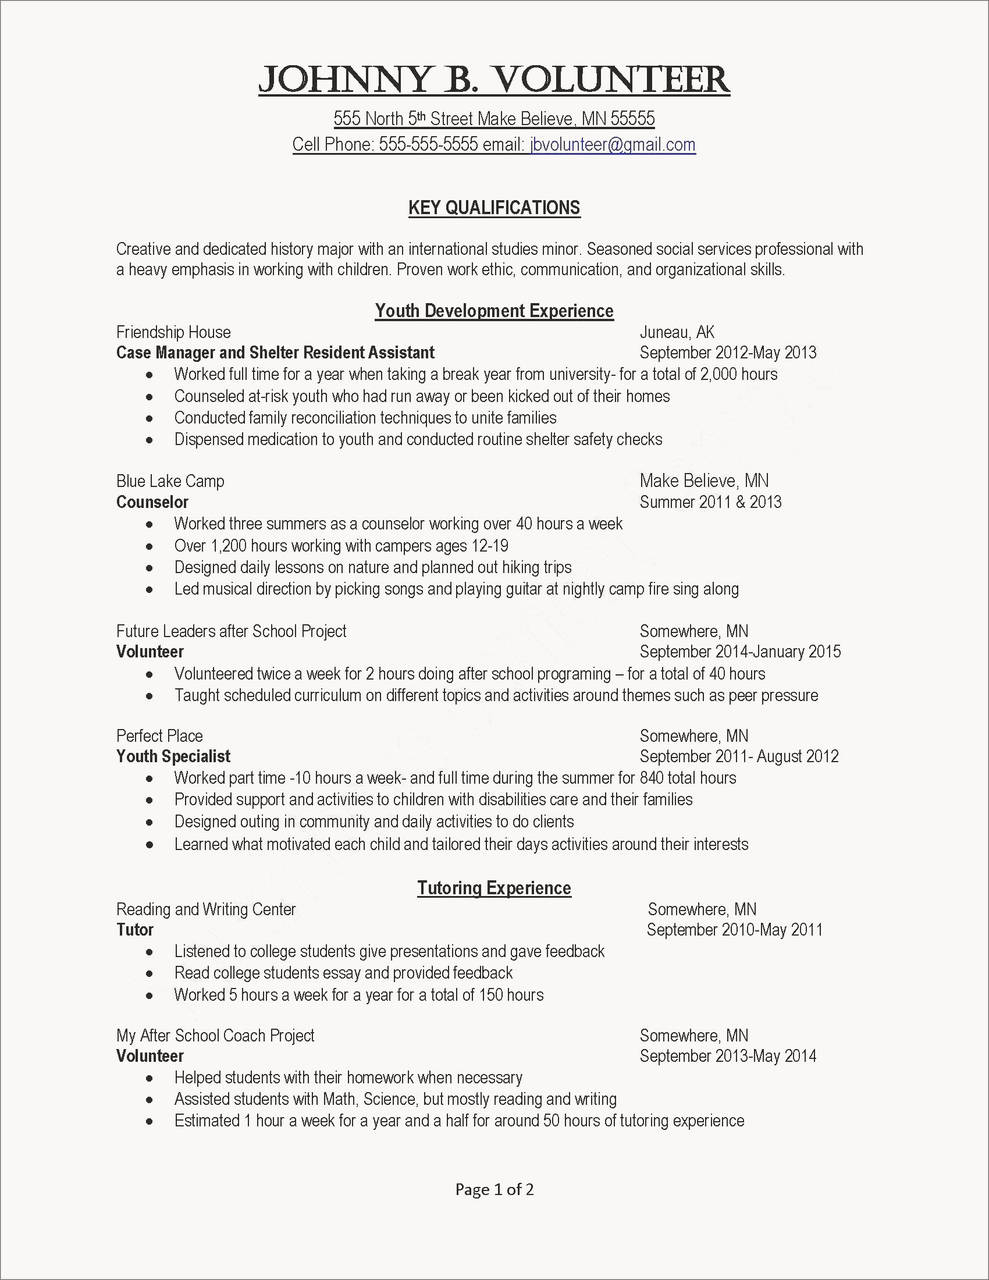 Resume for Transfer Students - Perfect Resume Example Luxury Resumes Skills Examples Resume